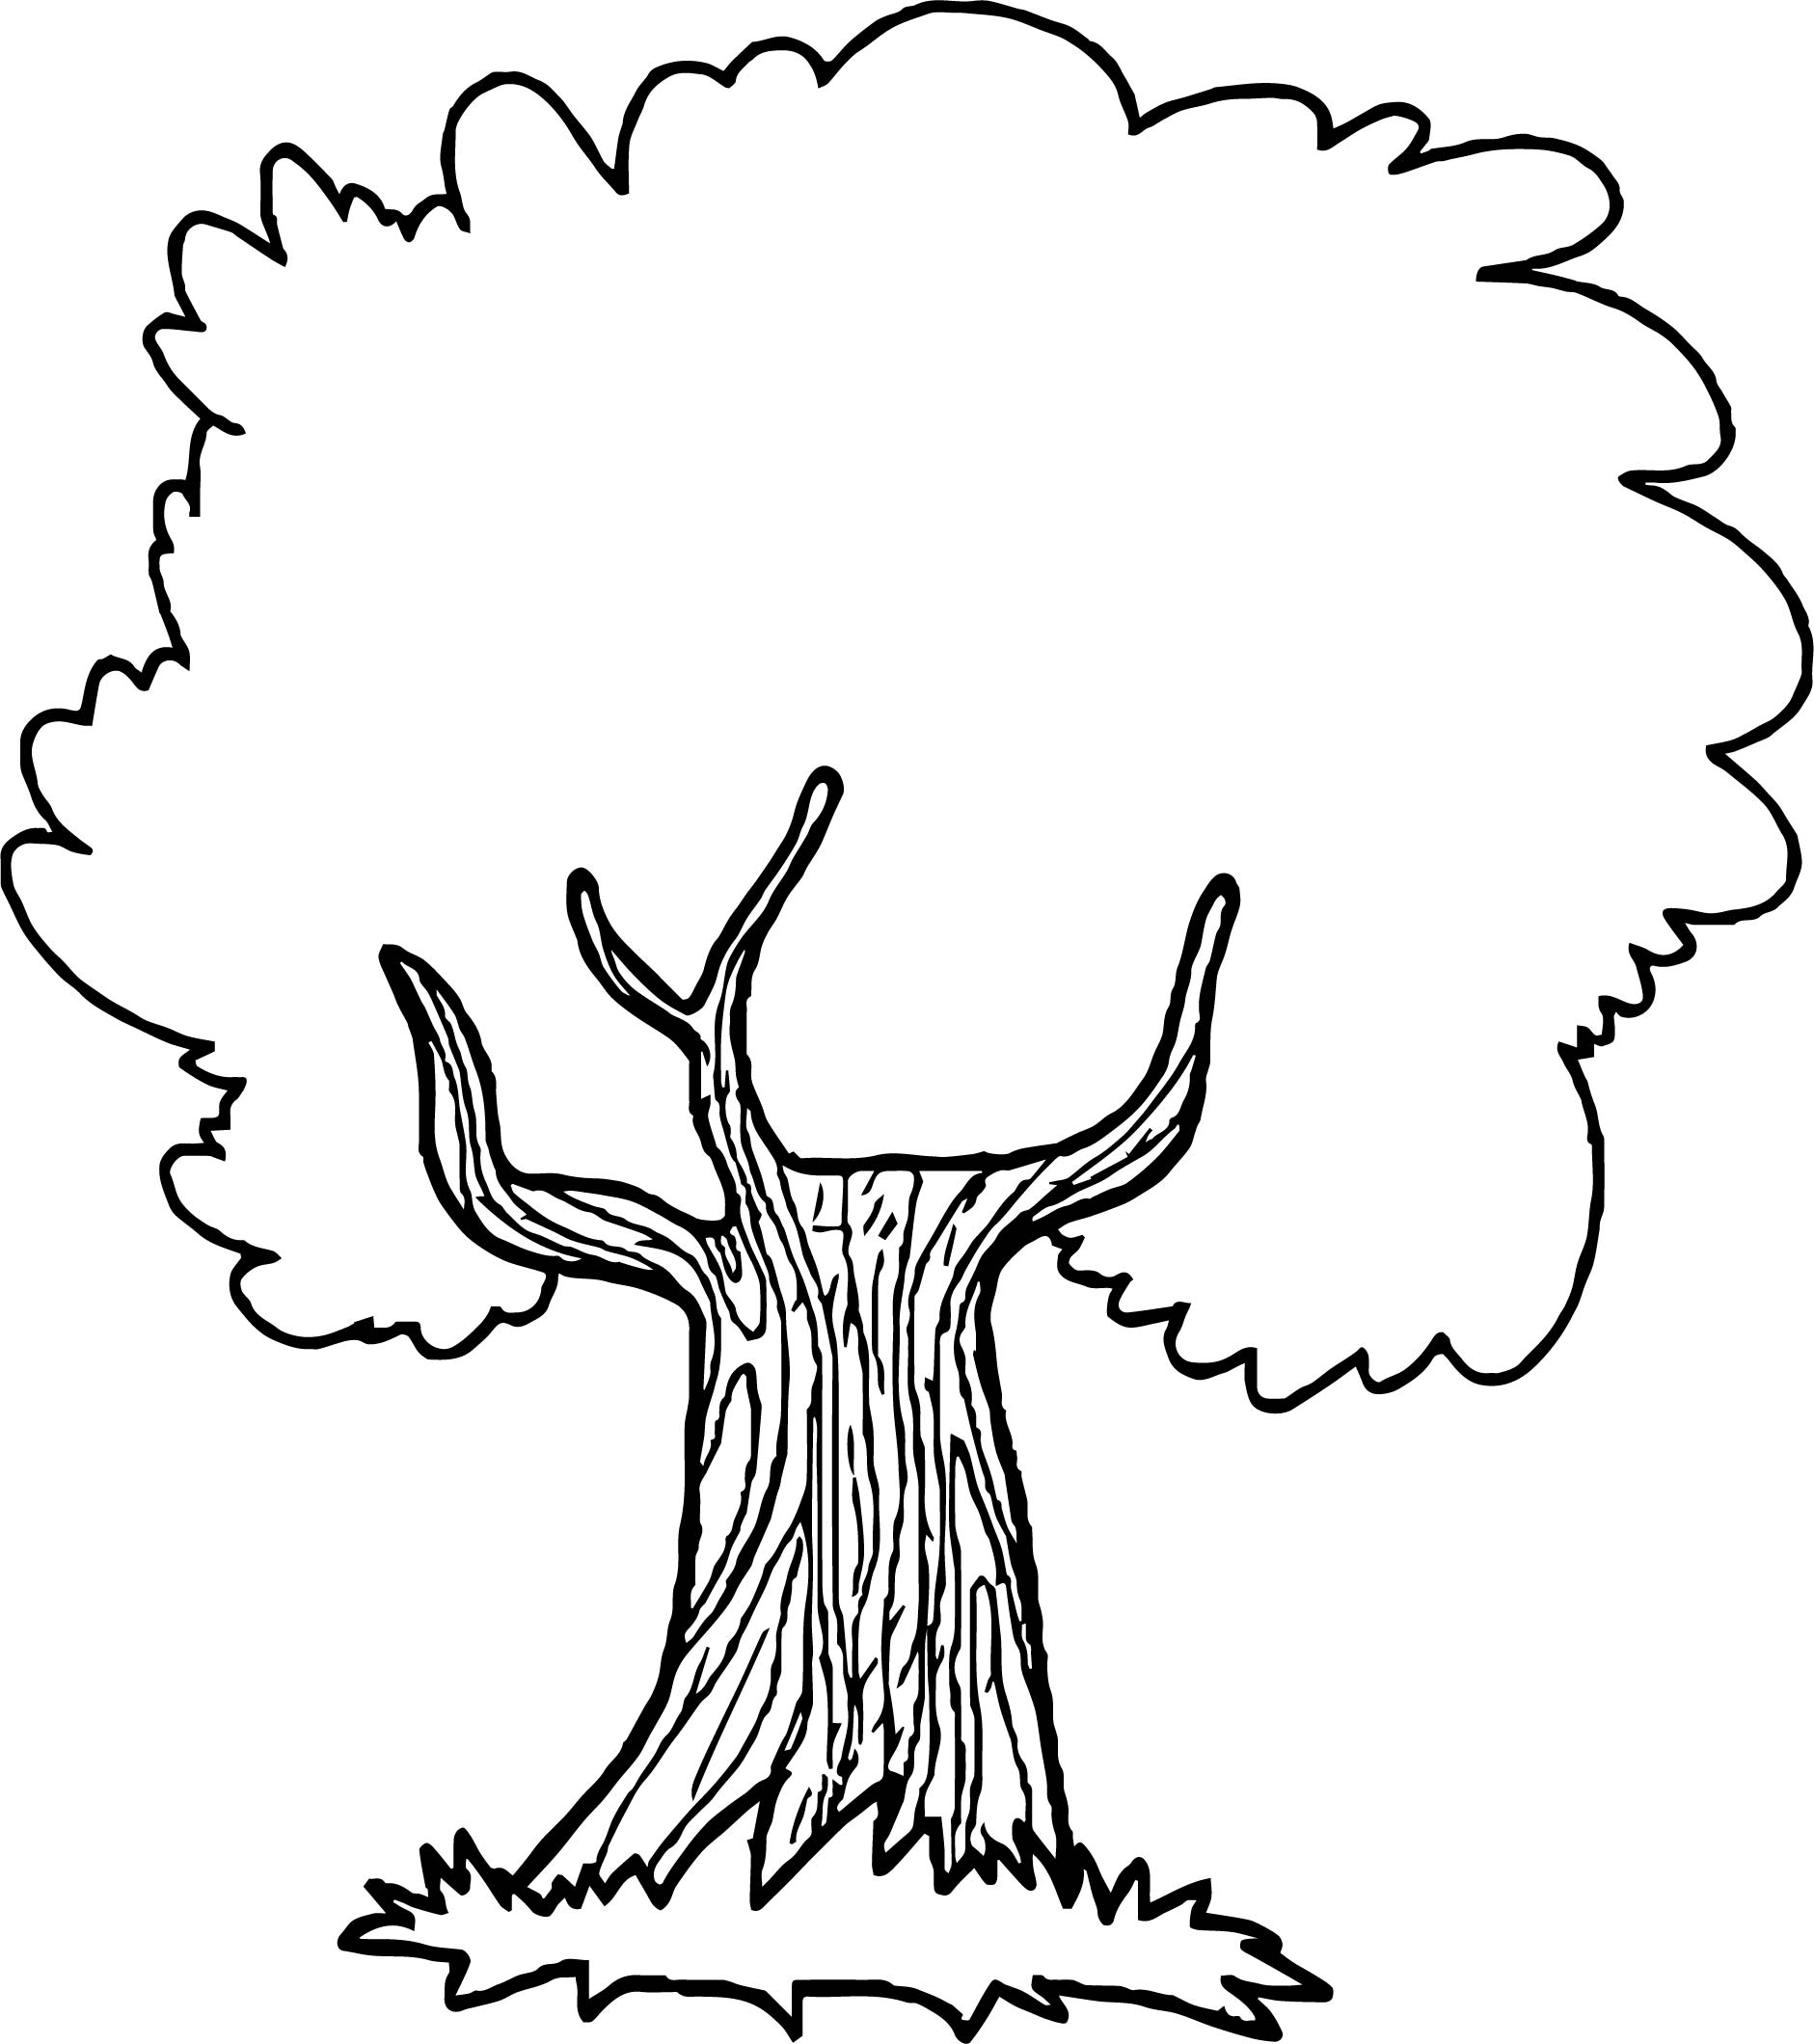 Thoughtful Apple Tree Coloring Page Wecoloringpage Com